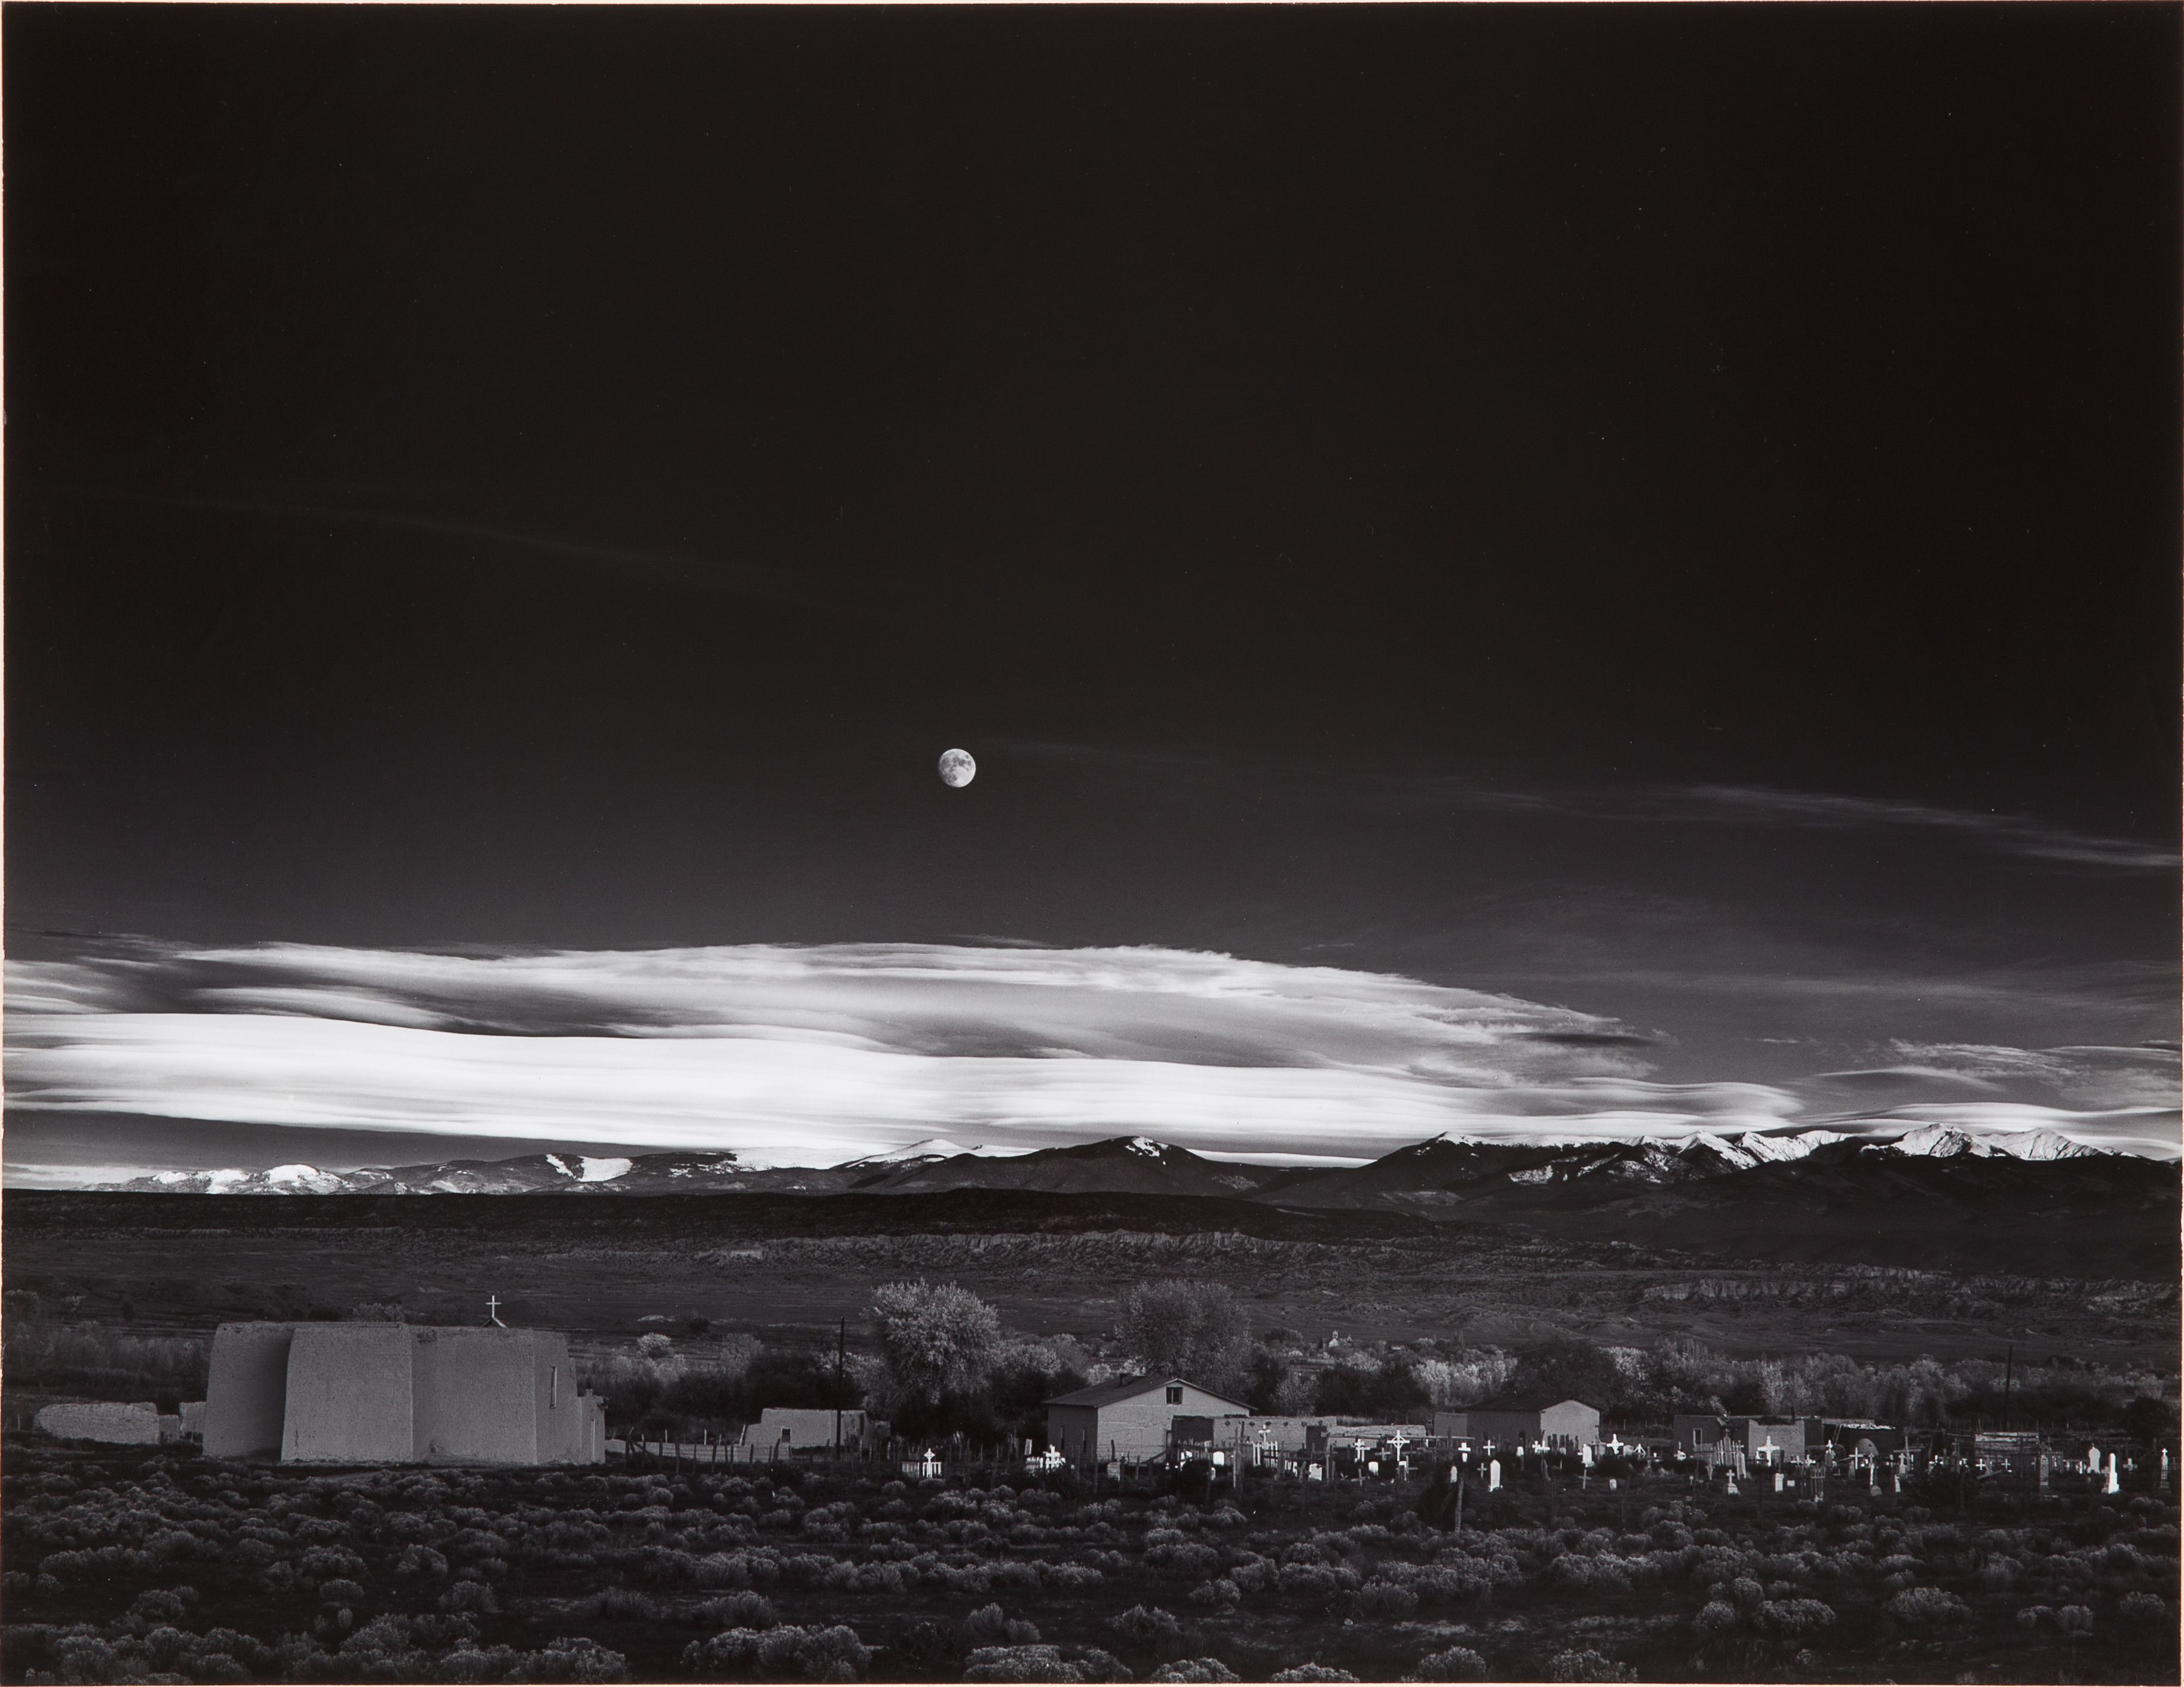 Moonrise, Hernandez, New Mexico by Ansel Adams on Paddle8. Paddle8 is a marketplace for collectors, presenting auctions of extraordinary art and objects.